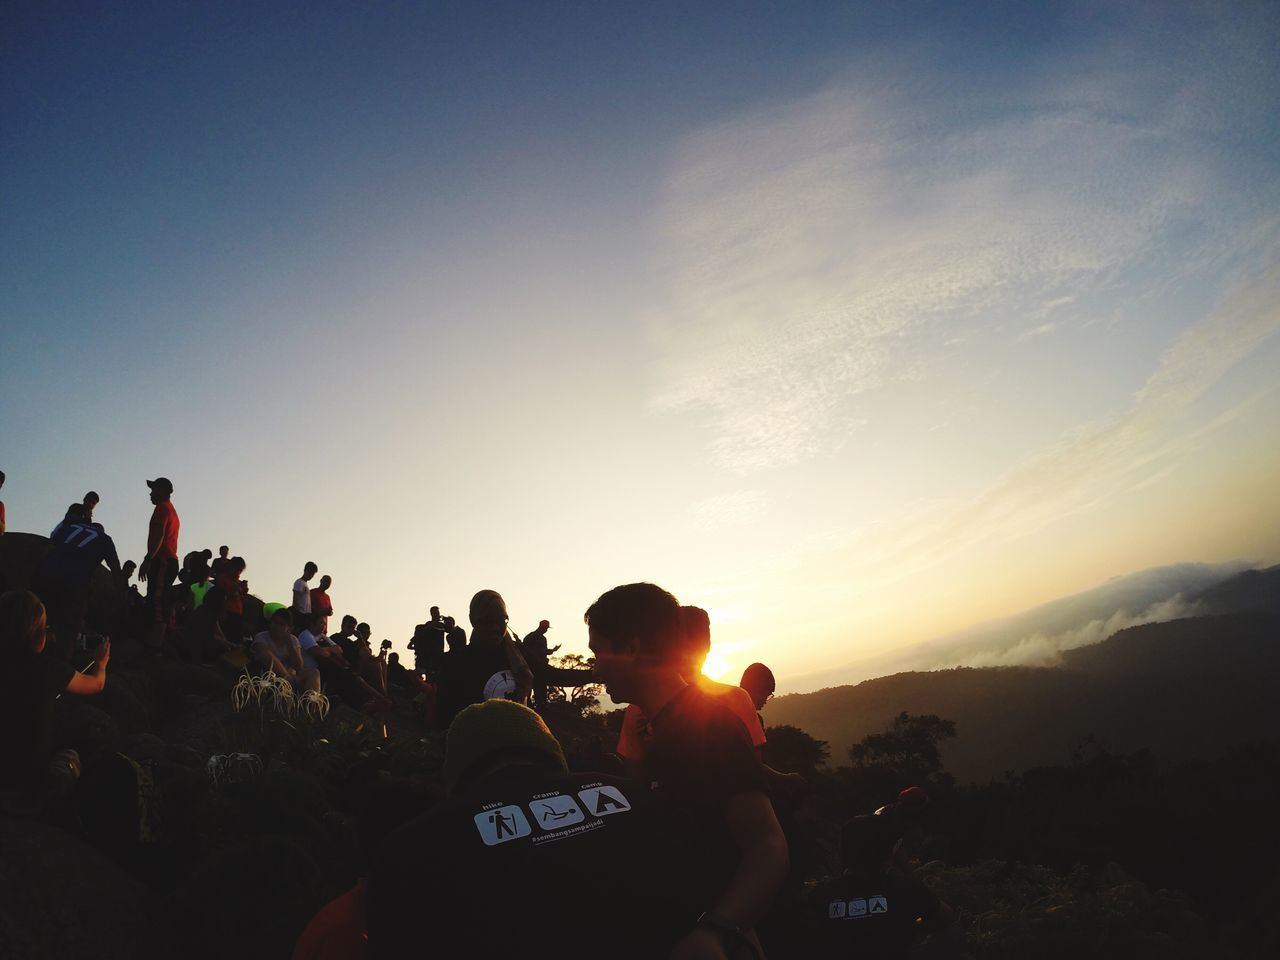 sunset, real people, men, sky, leisure activity, large group of people, togetherness, outdoors, women, lifestyles, nature, crowd, day, adult, people